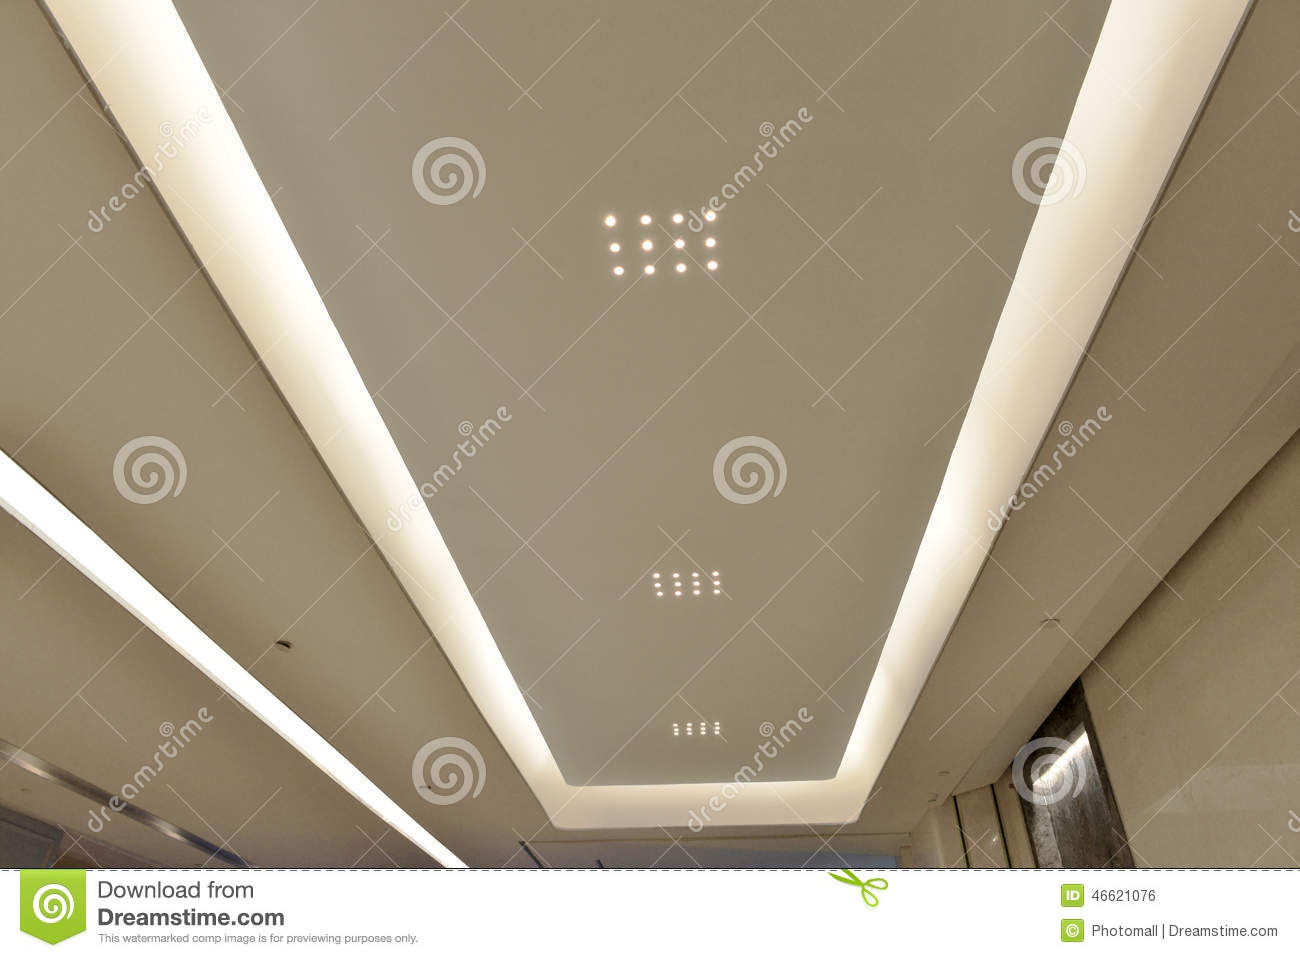 Led ceiling of modern plaza hall modern office building modern royalty free stock photo download led ceiling mozeypictures Choice Image